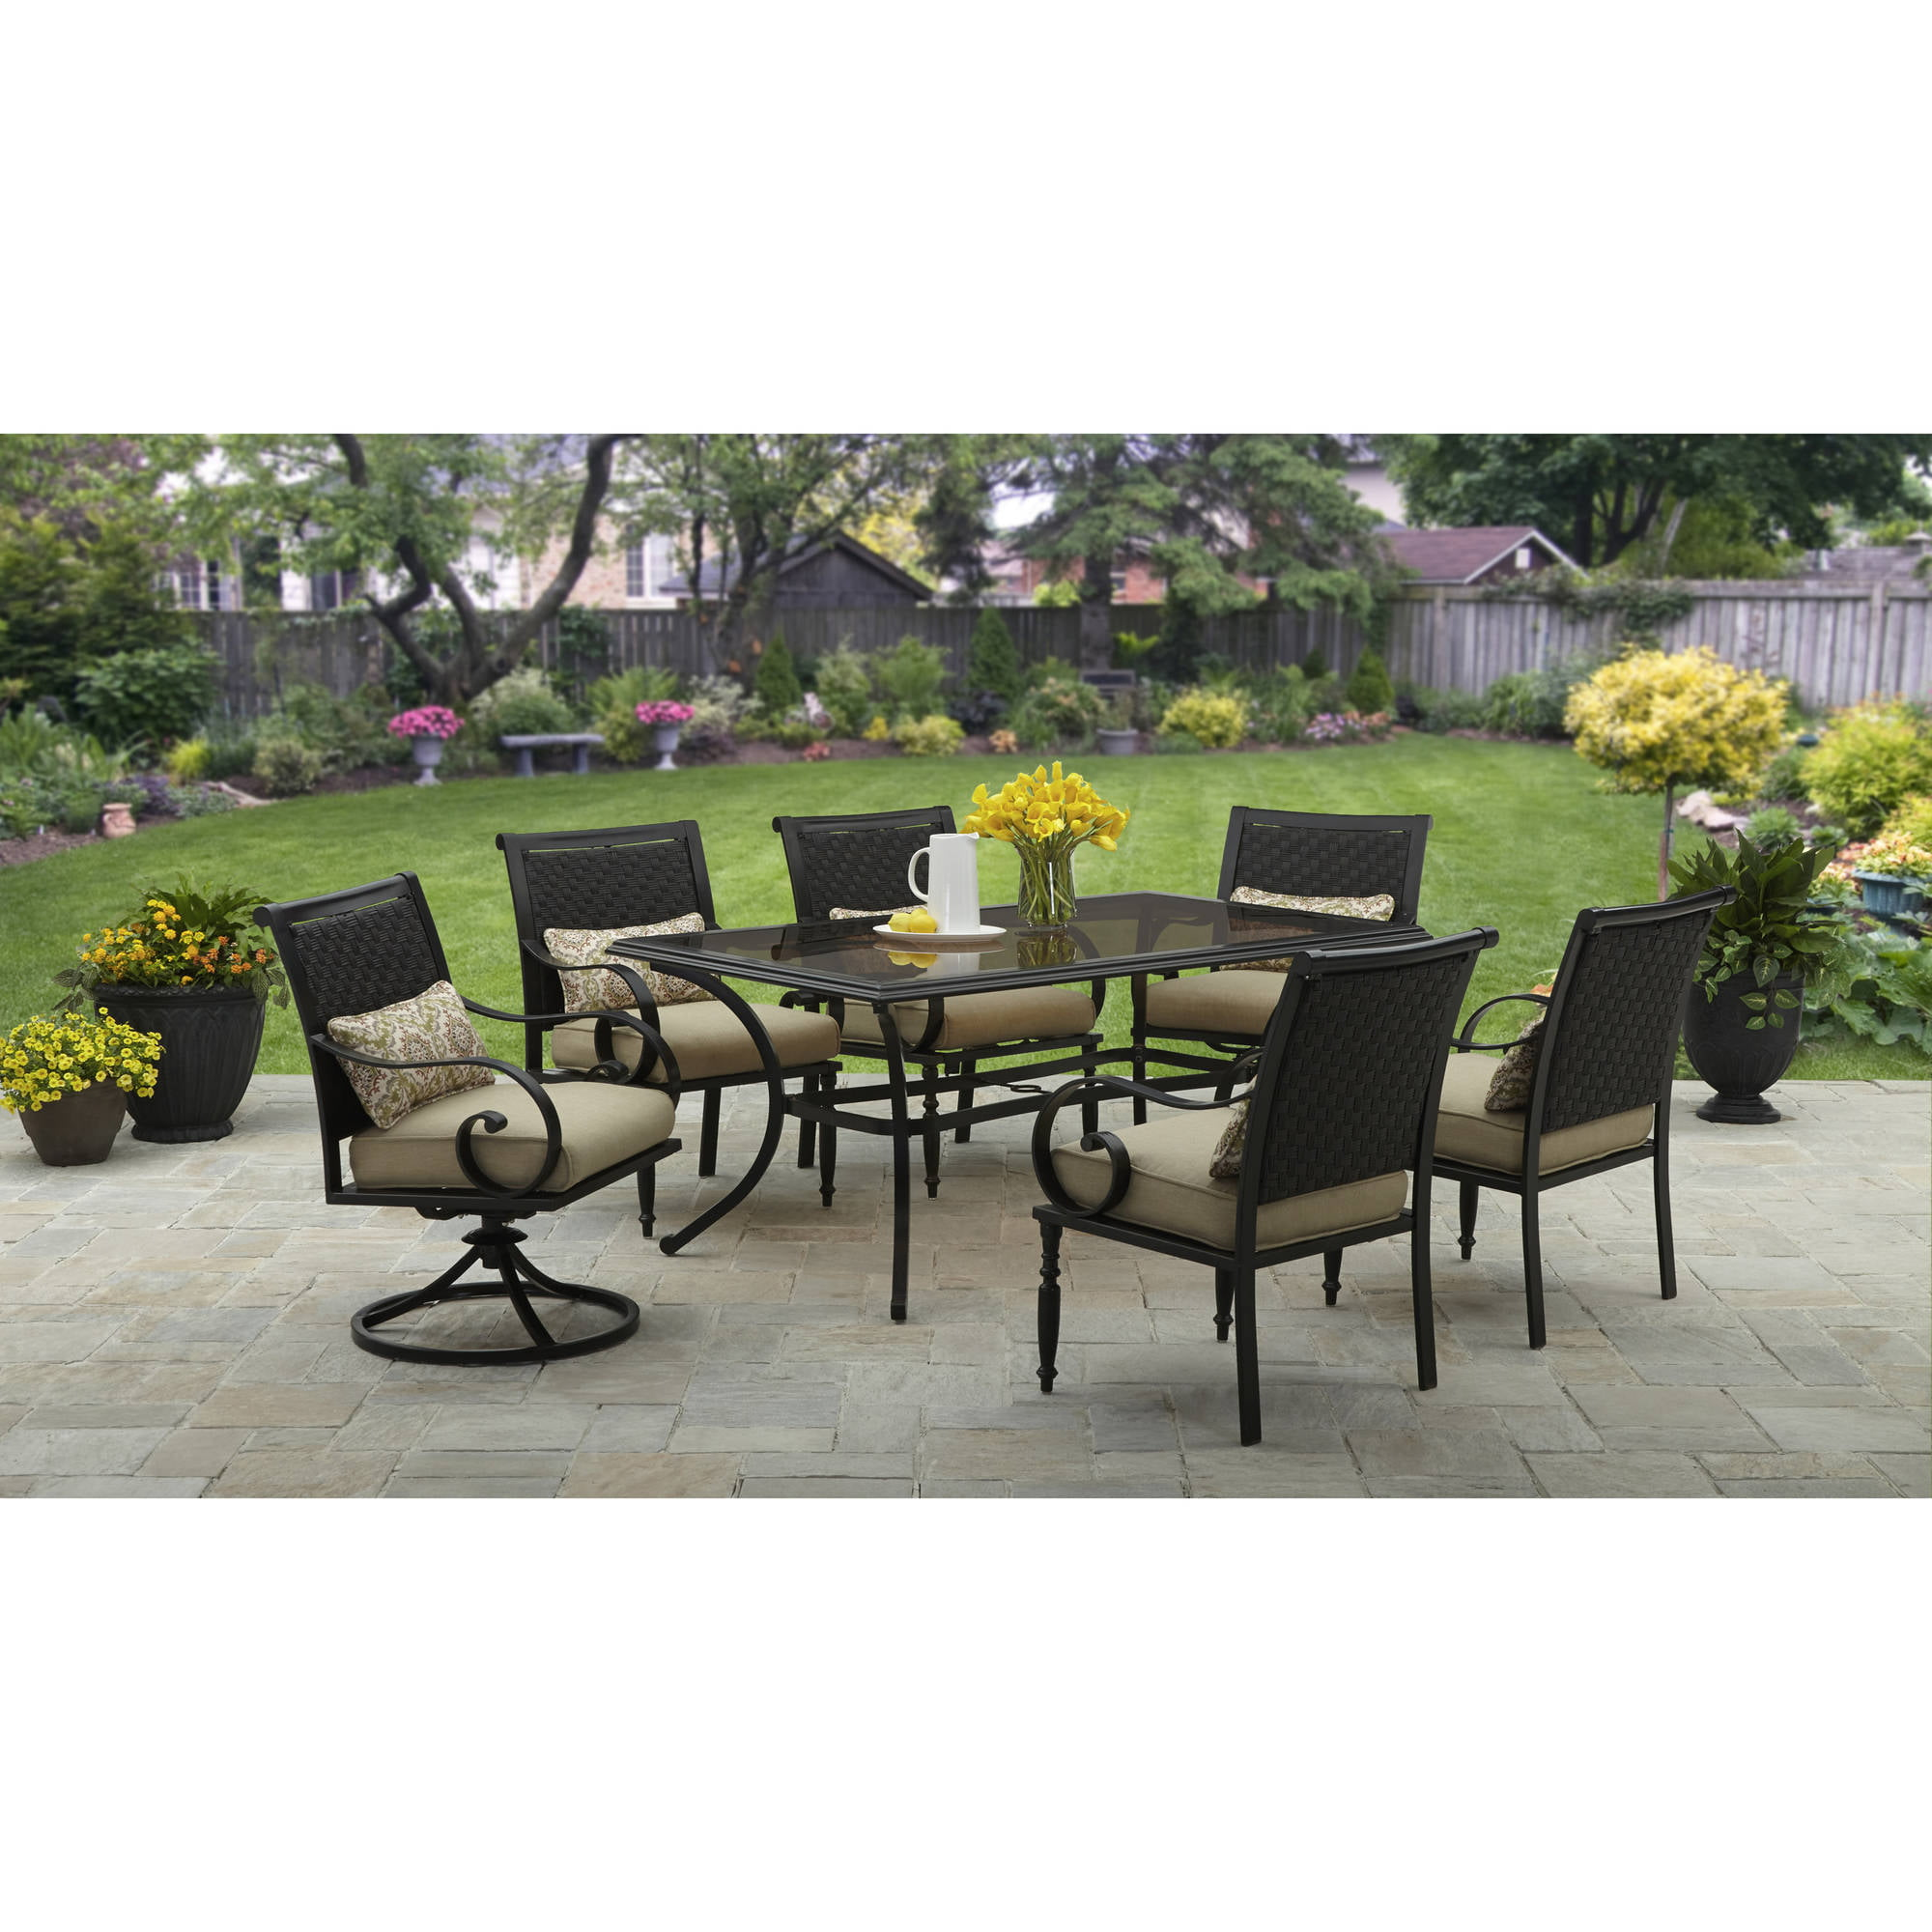 Better Homes and Gardens Englewood Heights II Aluminum 7 Piece